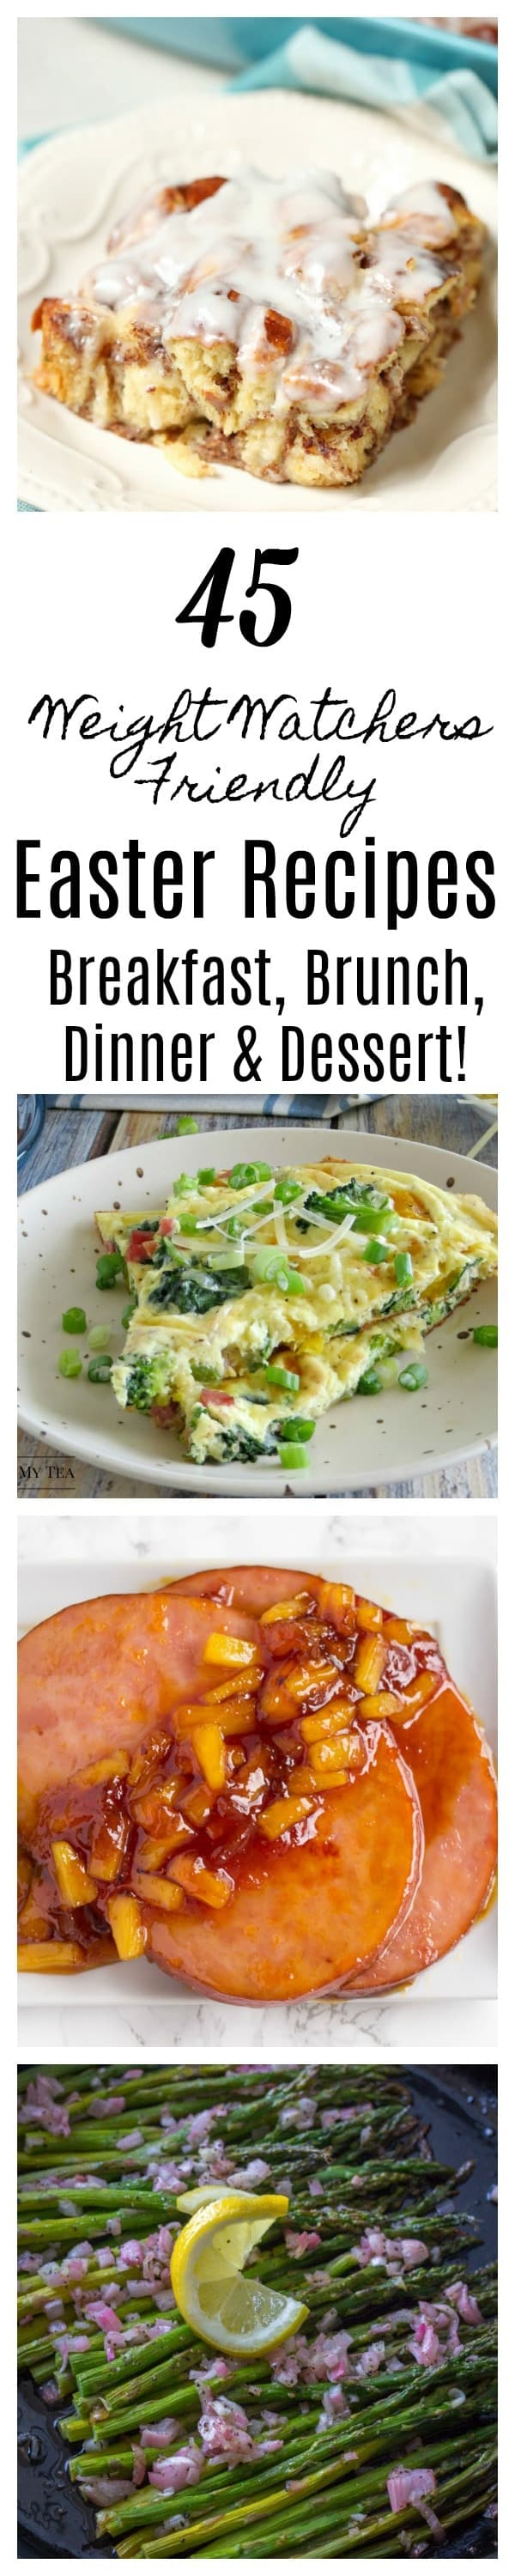 Easter Recipes - 45 Weight Watchers Friendly Easter Recipes to make your Easters Meals amazing while staying on plan with Weight Watchers! #Easter#WeightWatchers #WeightWatchersRecipes #EasterDinner #easterBrunch #EasterBreakfast #EasterDessert